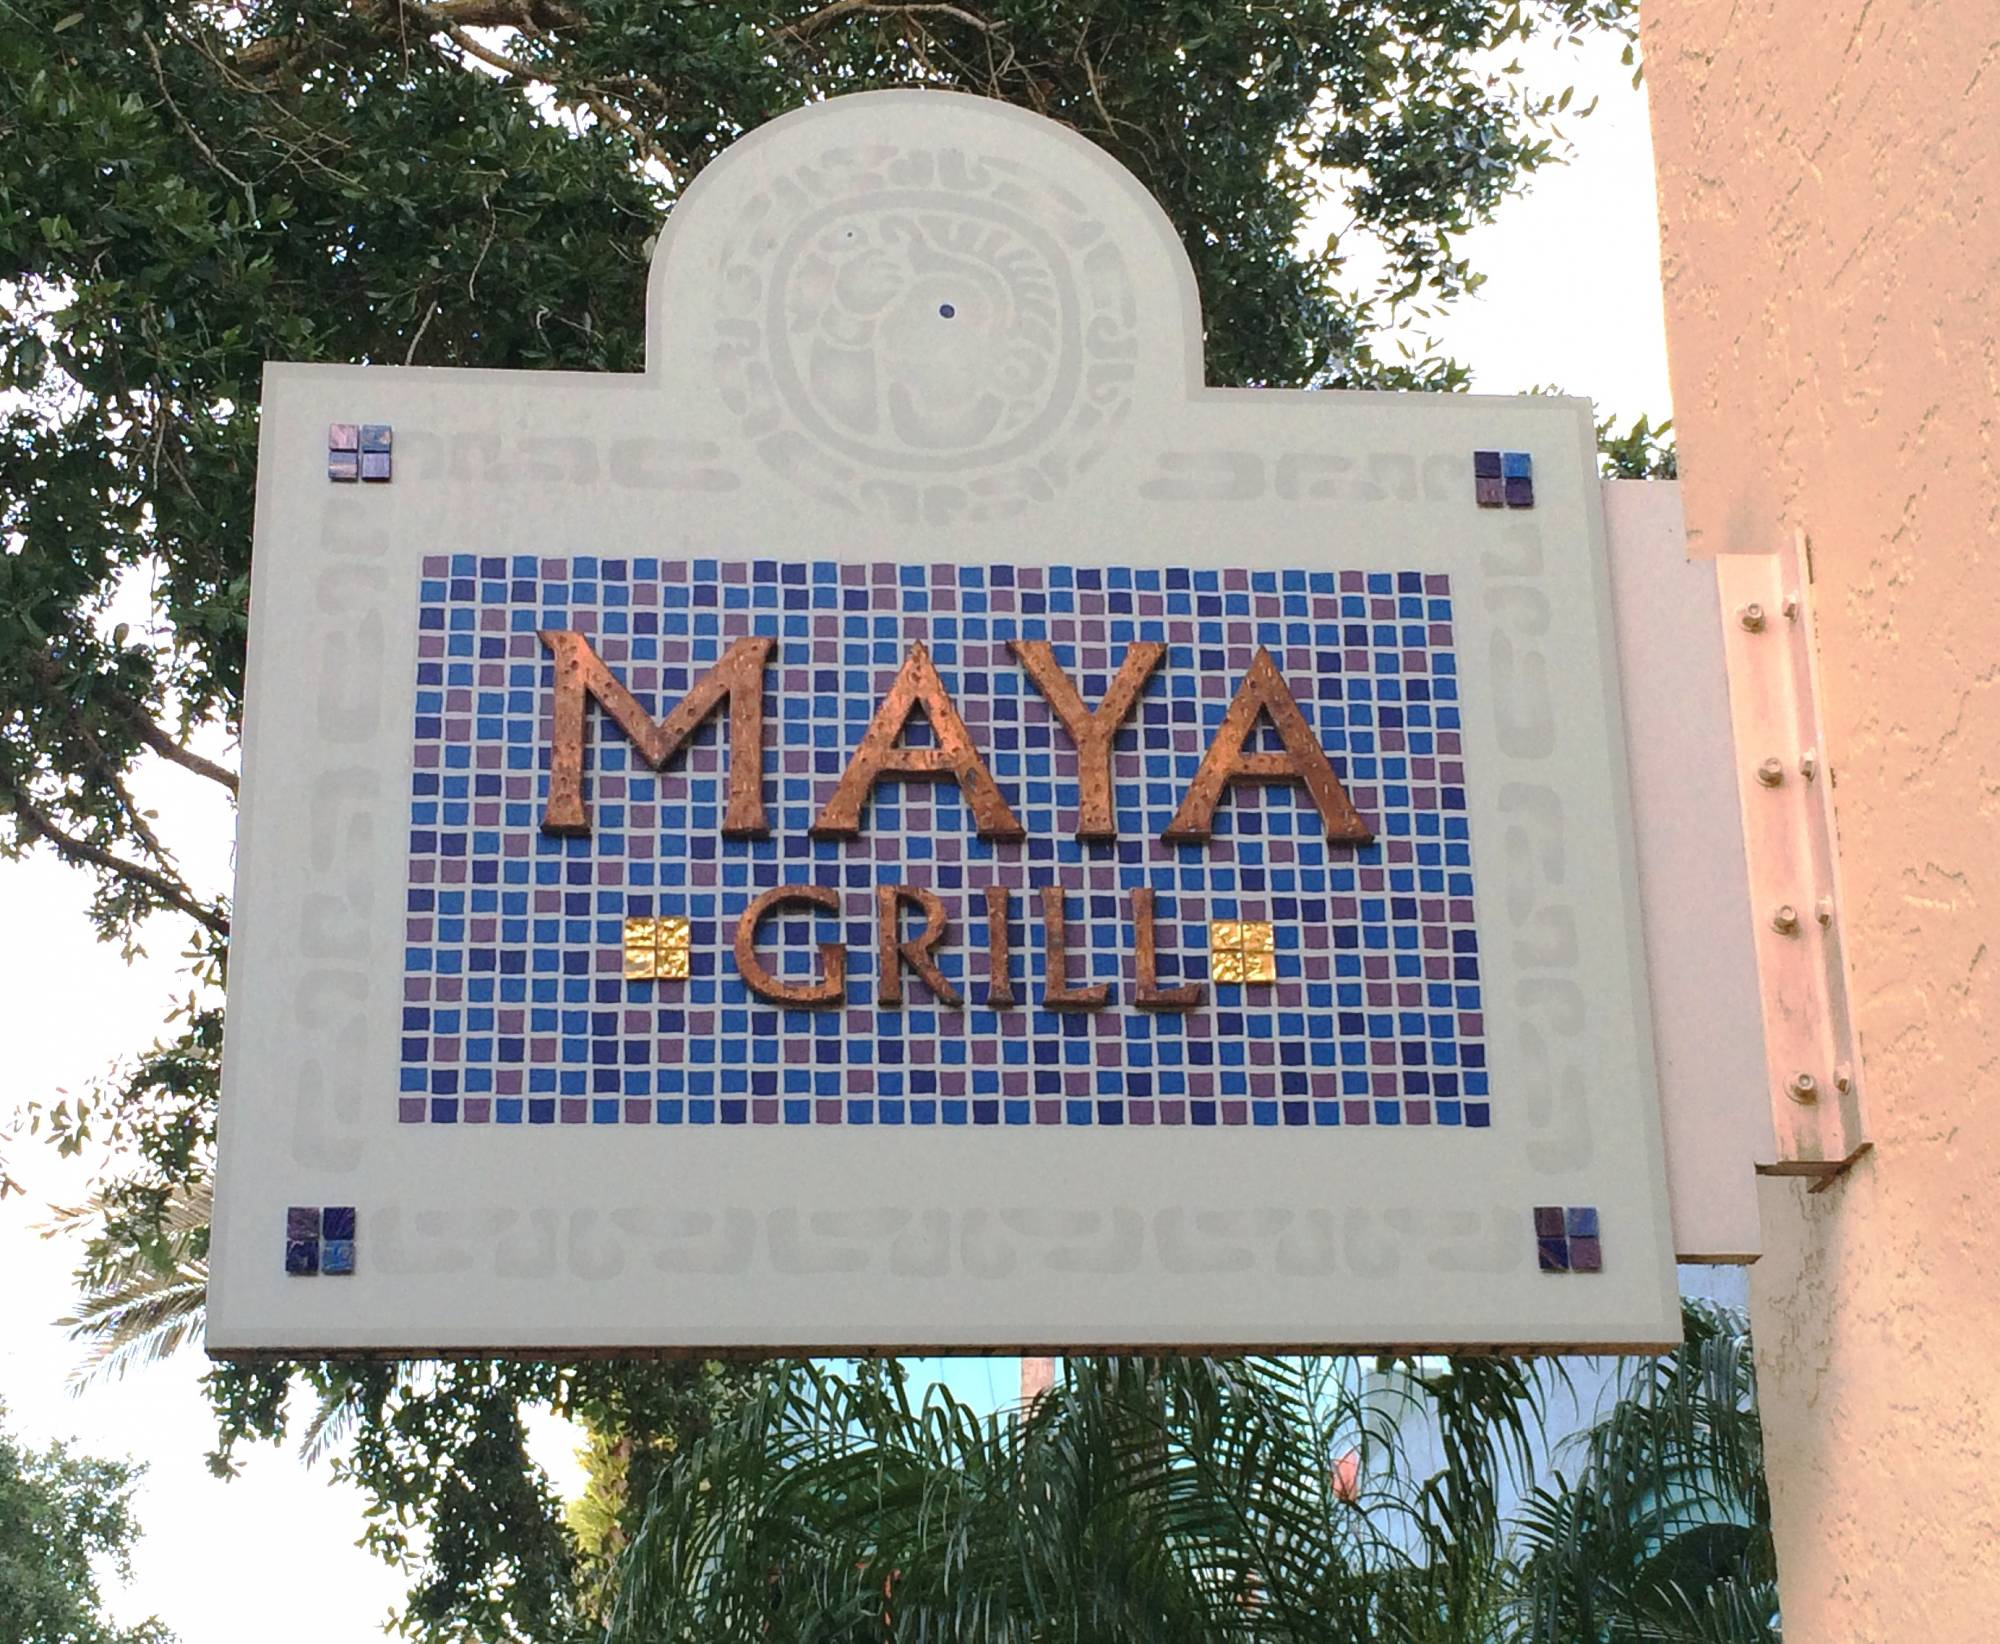 Enjoy a Tex Mex meal at Maya Grill |PassPorter.com